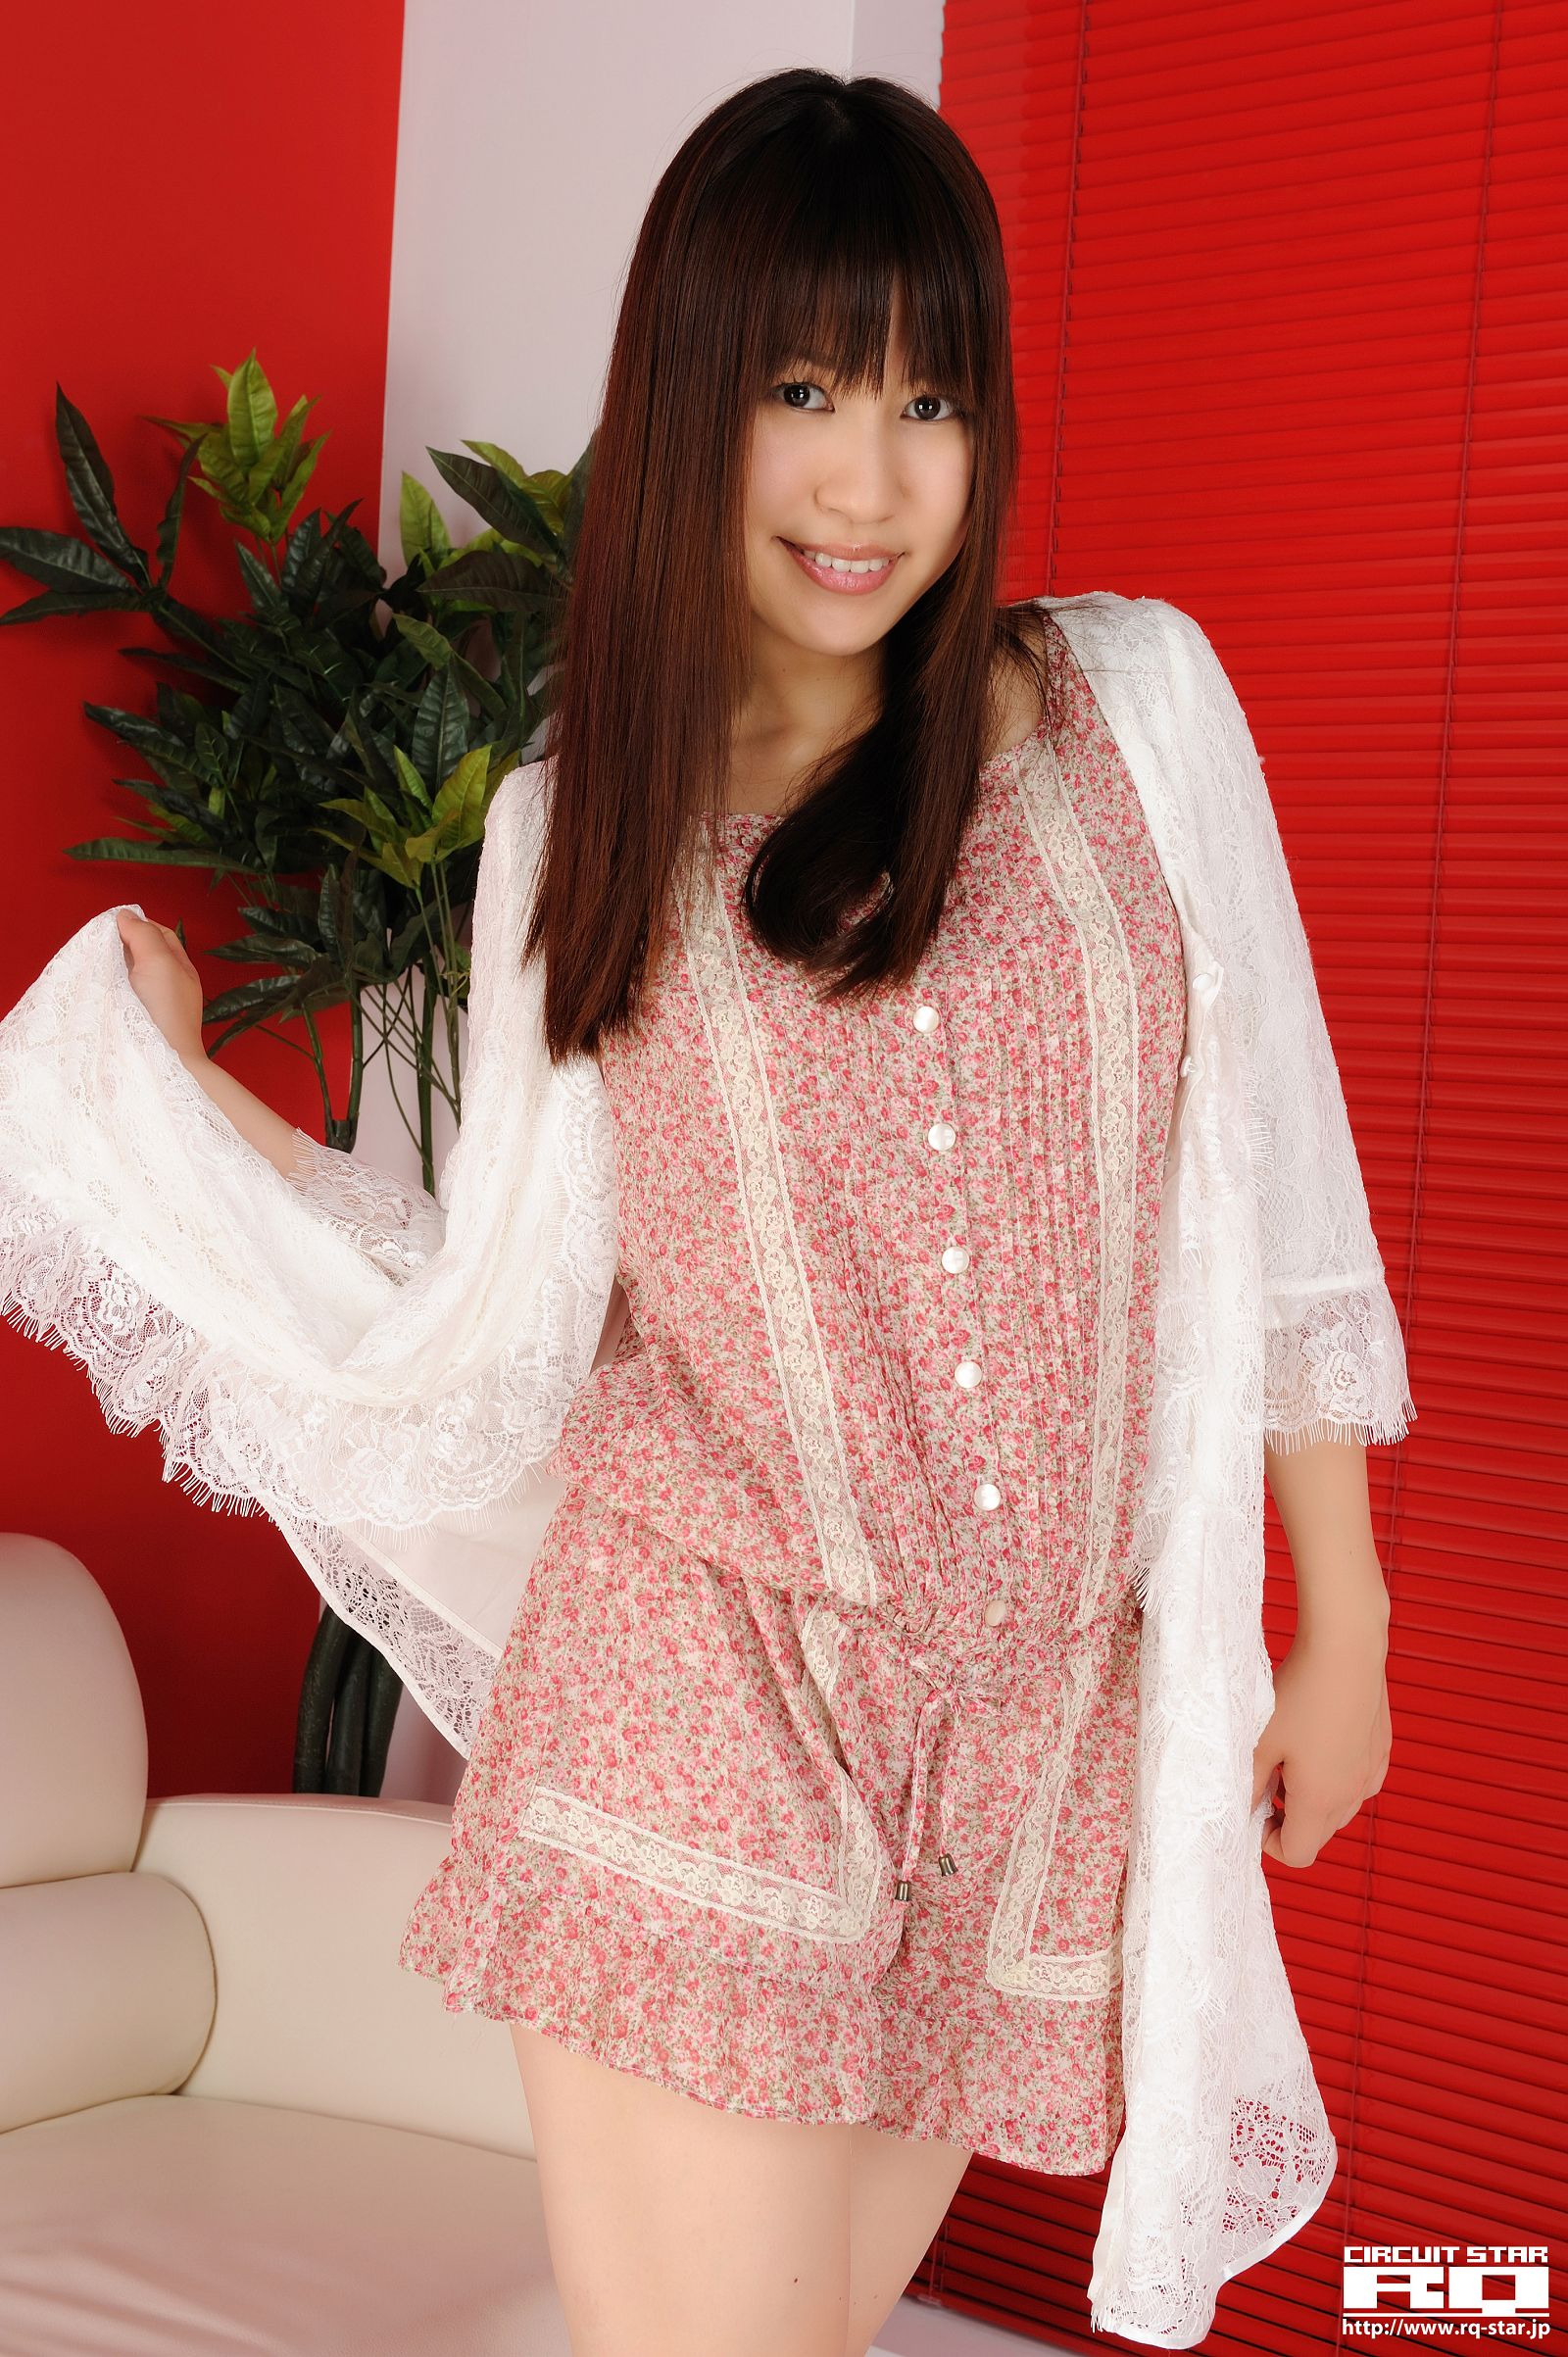 [RQ STAR美女] NO.0290 Emi Sakura 佐倉恵美 Private Dress[75P] RQ STAR 第2张